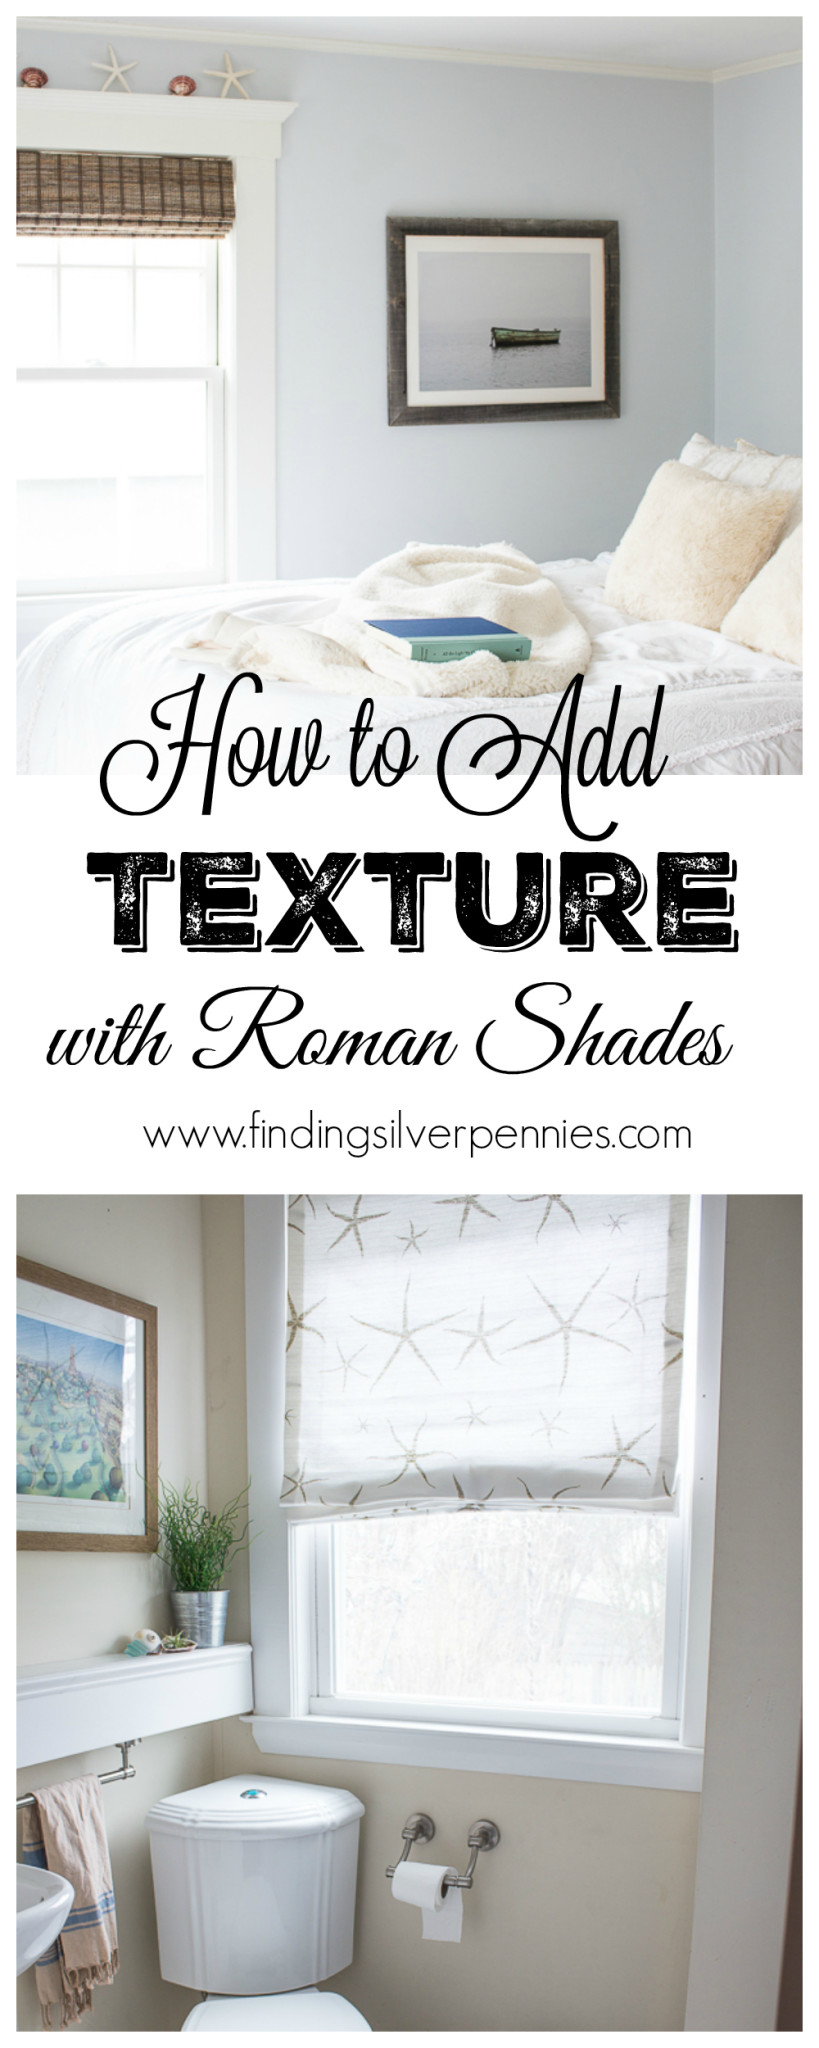 How to Add Texture with Roman Shades